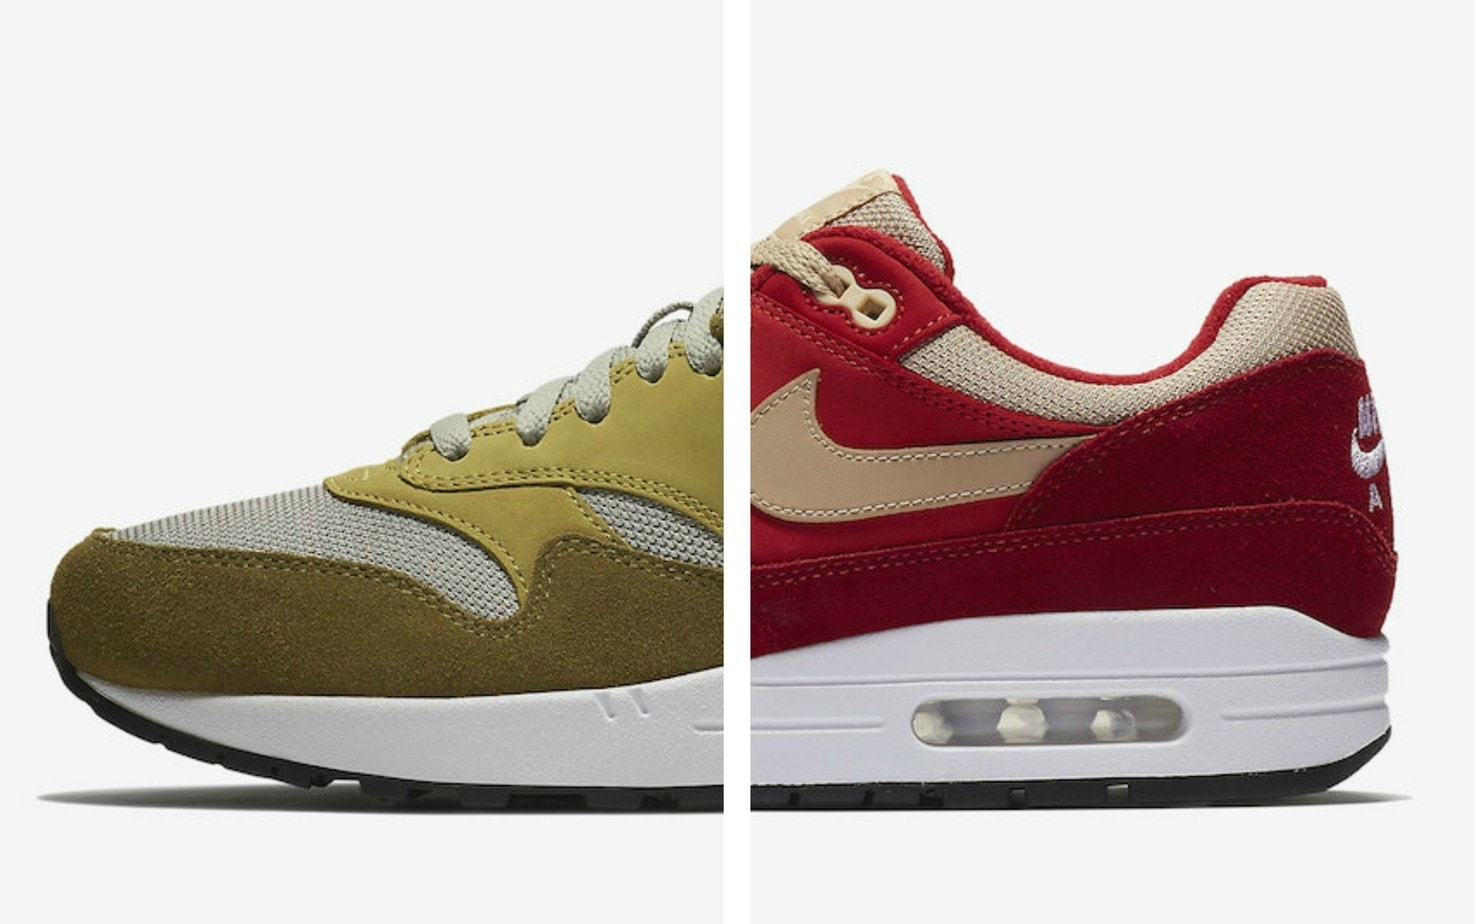 new style e6efa 32c56 ... top quality atmos and nike are back on top of the sneaker game. after  last